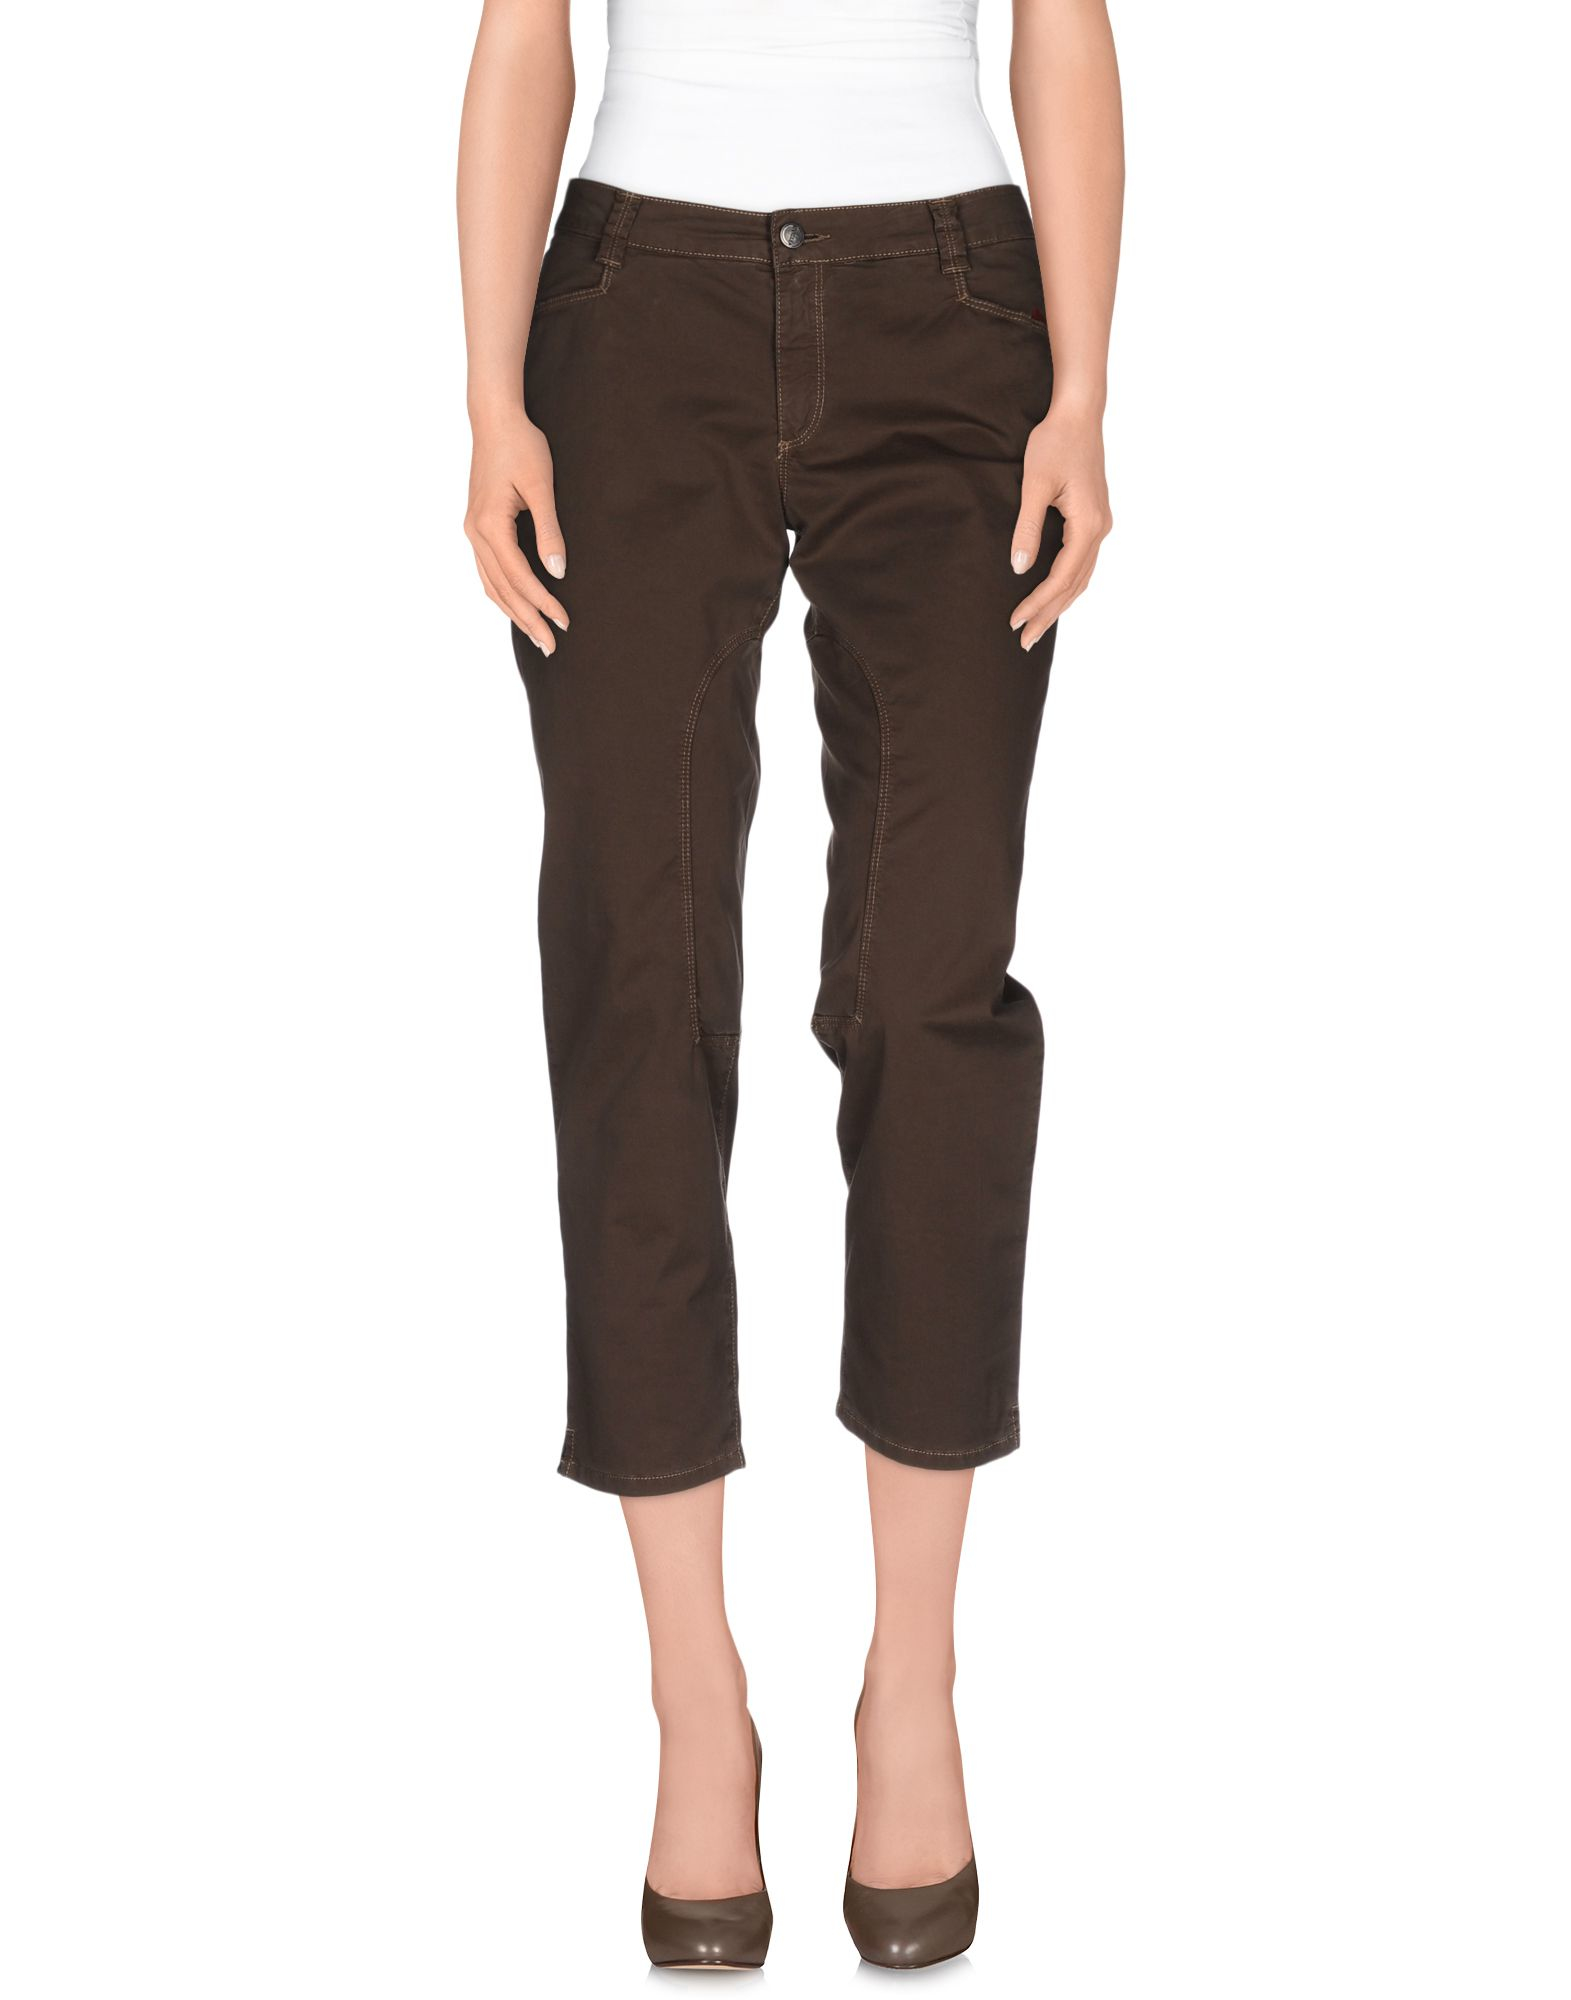 29 wonderful Brown Khaki Pants Womens – playzoa.com